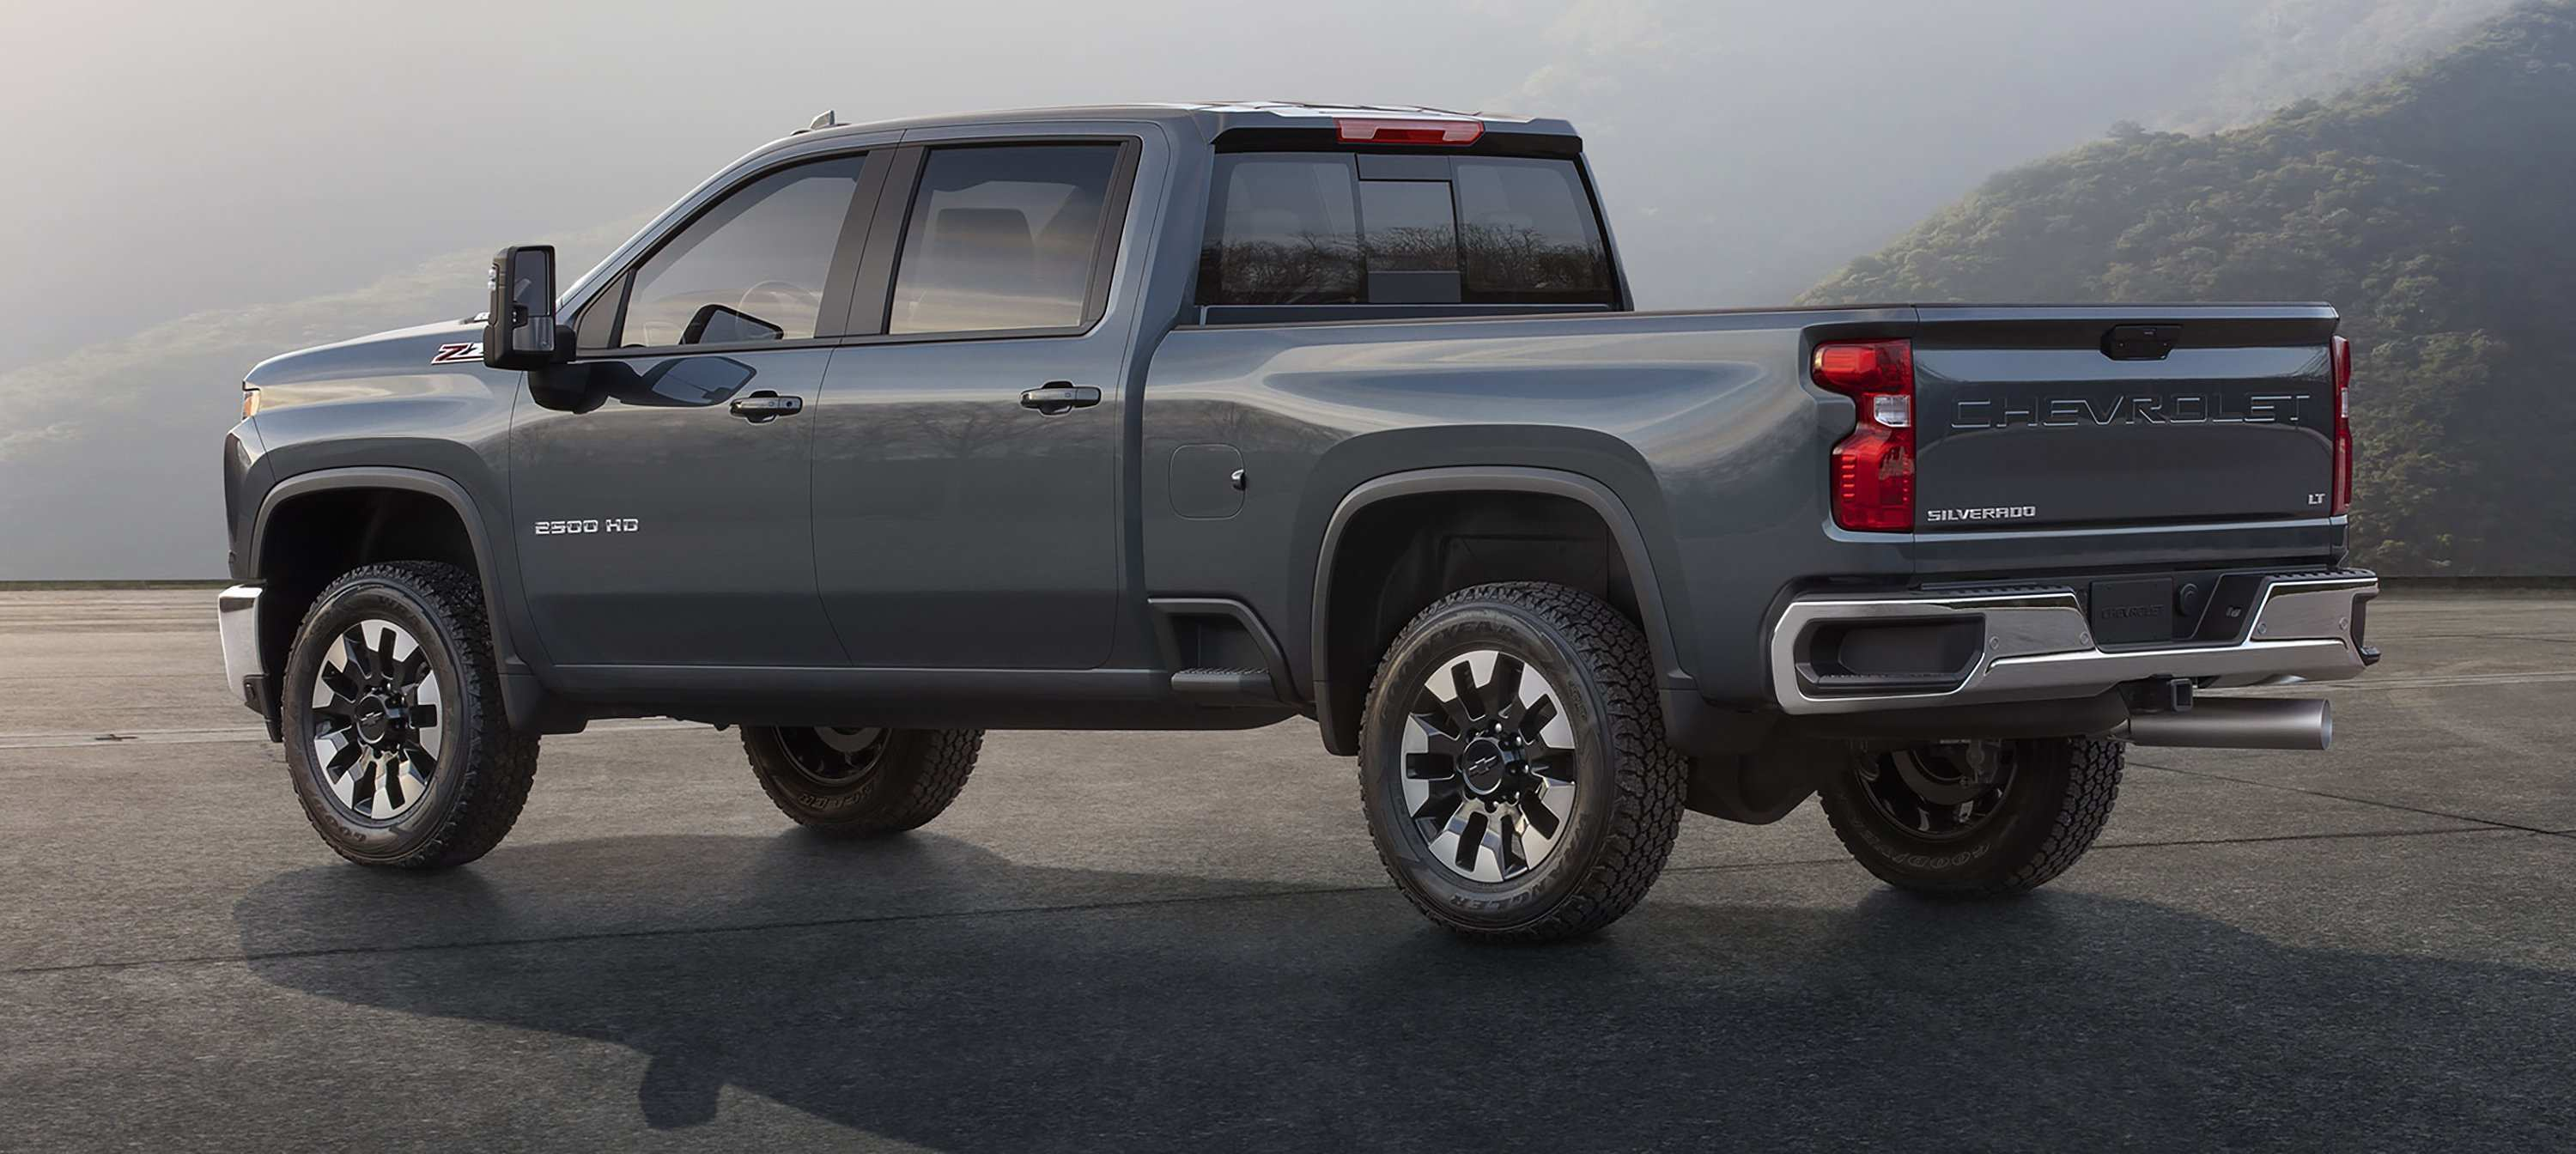 61 The Best 2020 Chevy Silverado 1500 Release Date And Concept